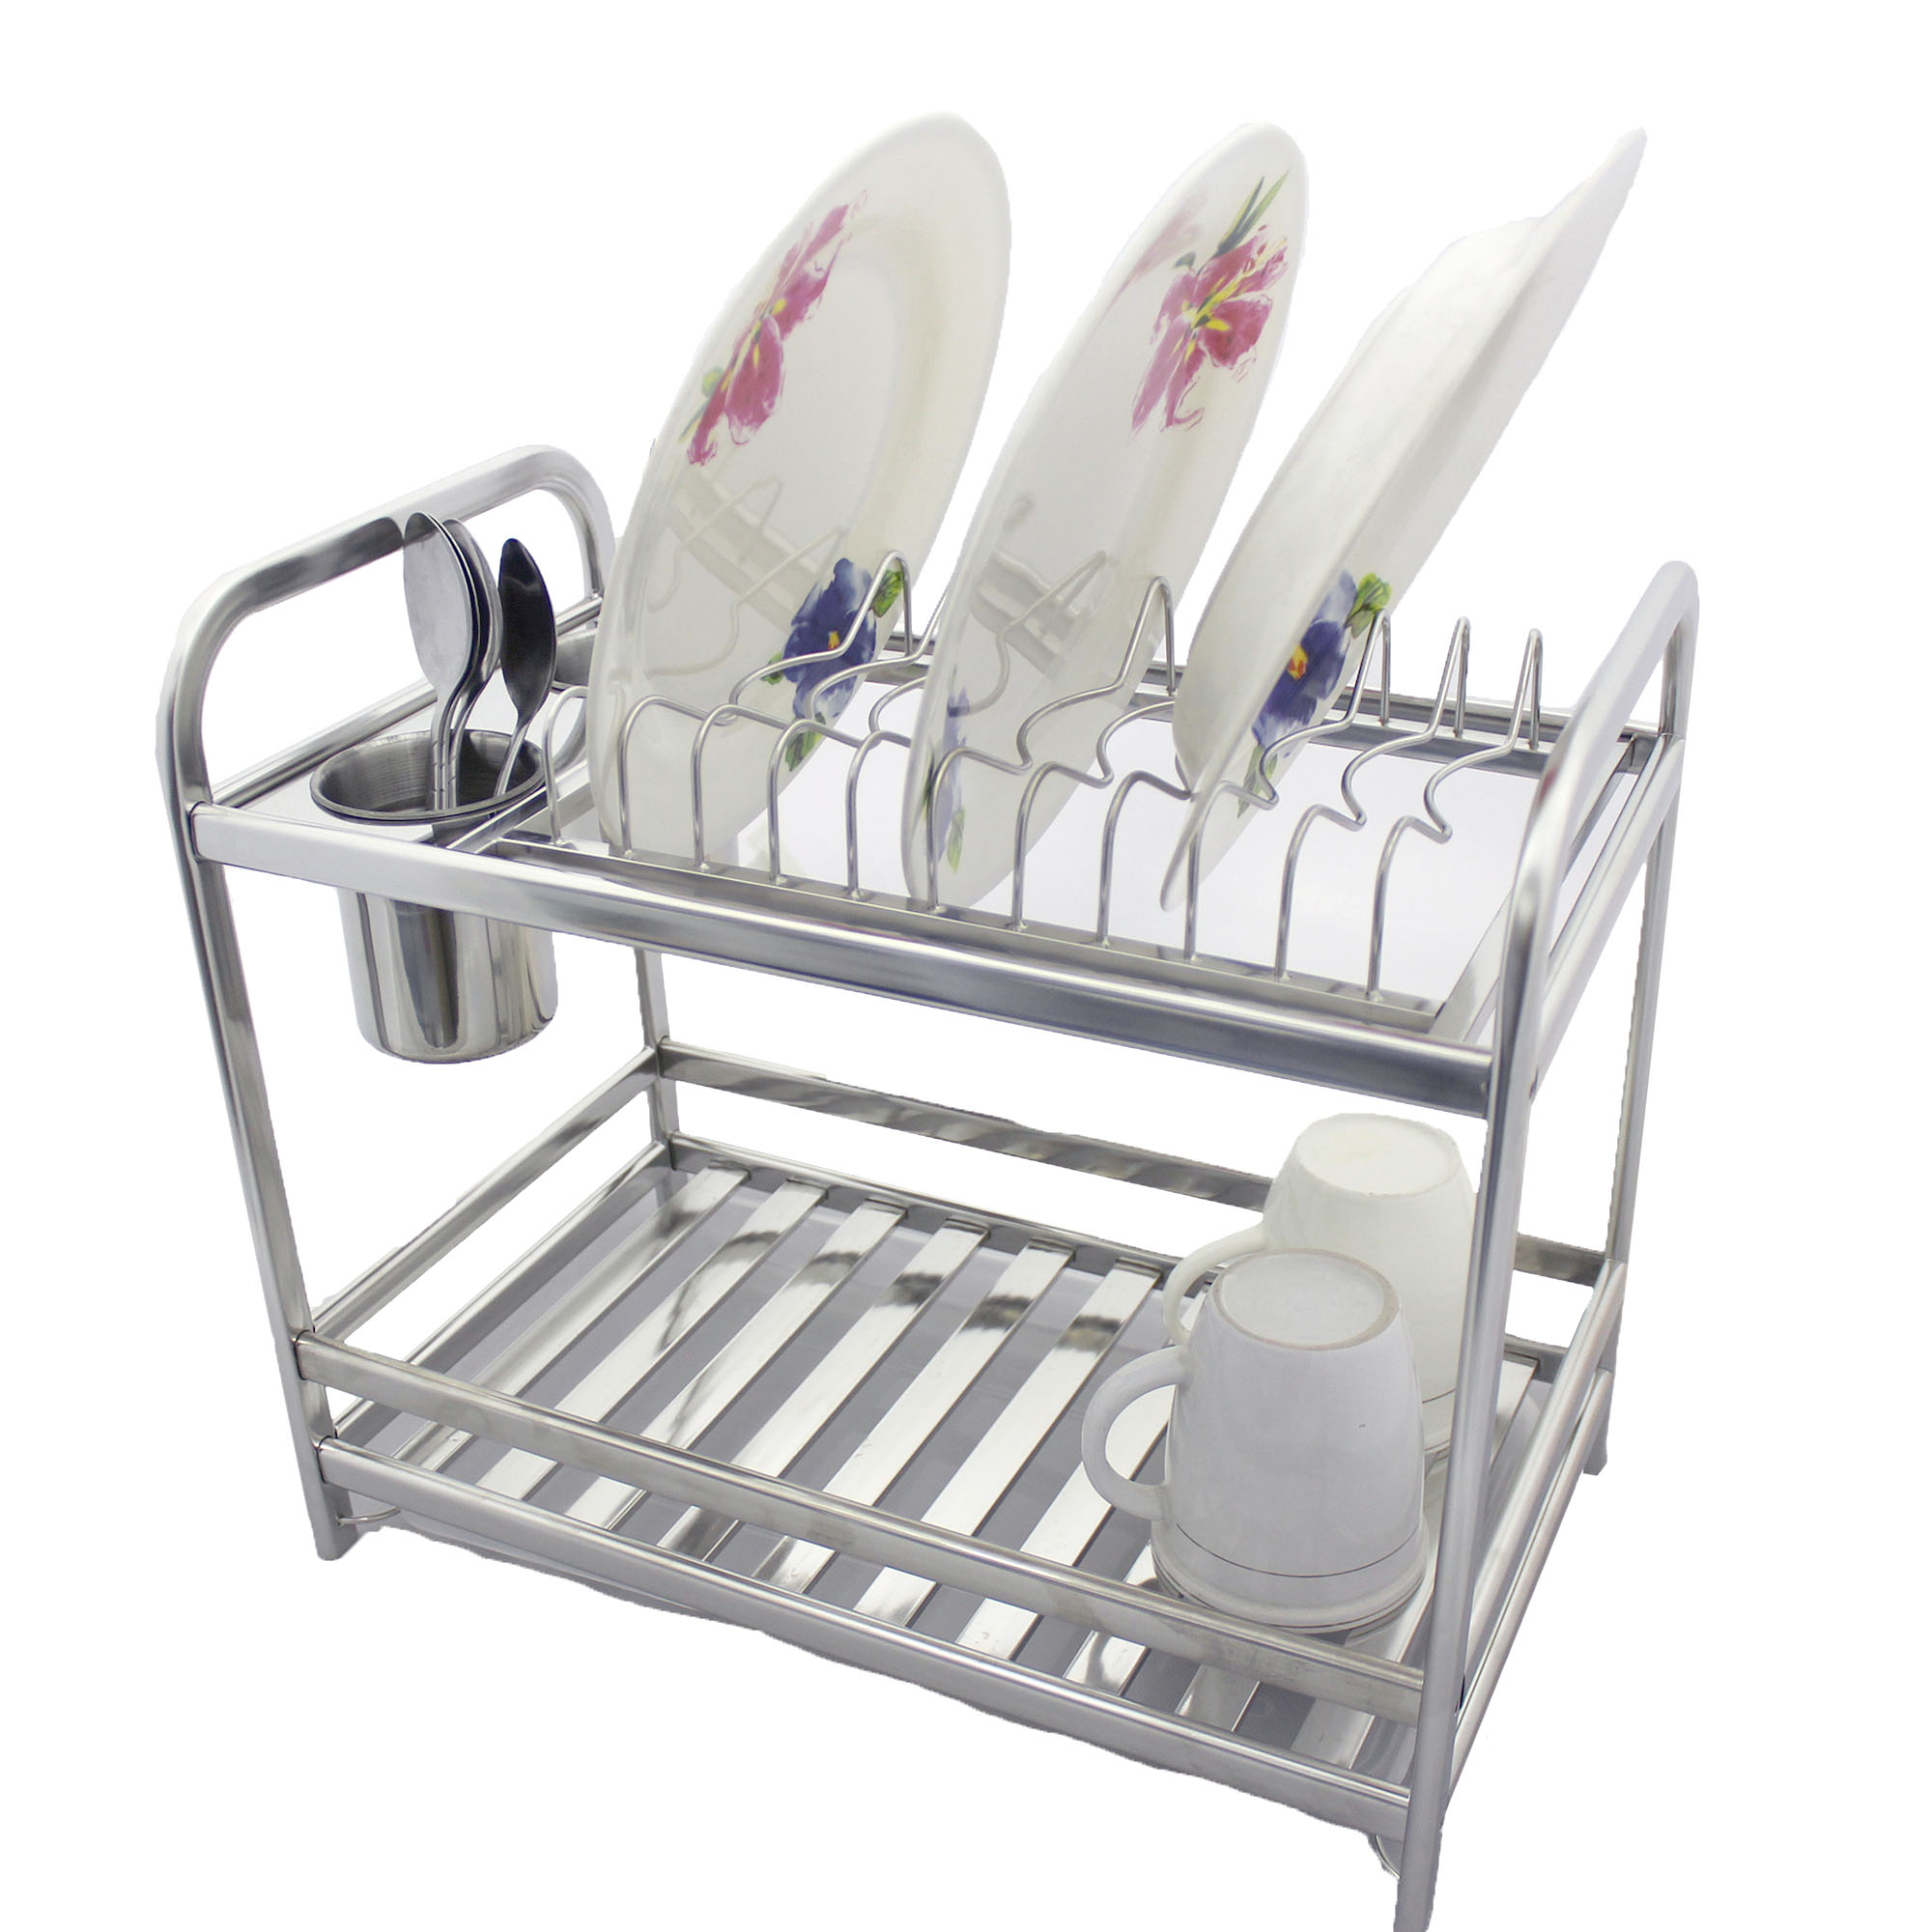 As 8211 High Quality Stainless Steel Dish Drainer Rack Xc1005